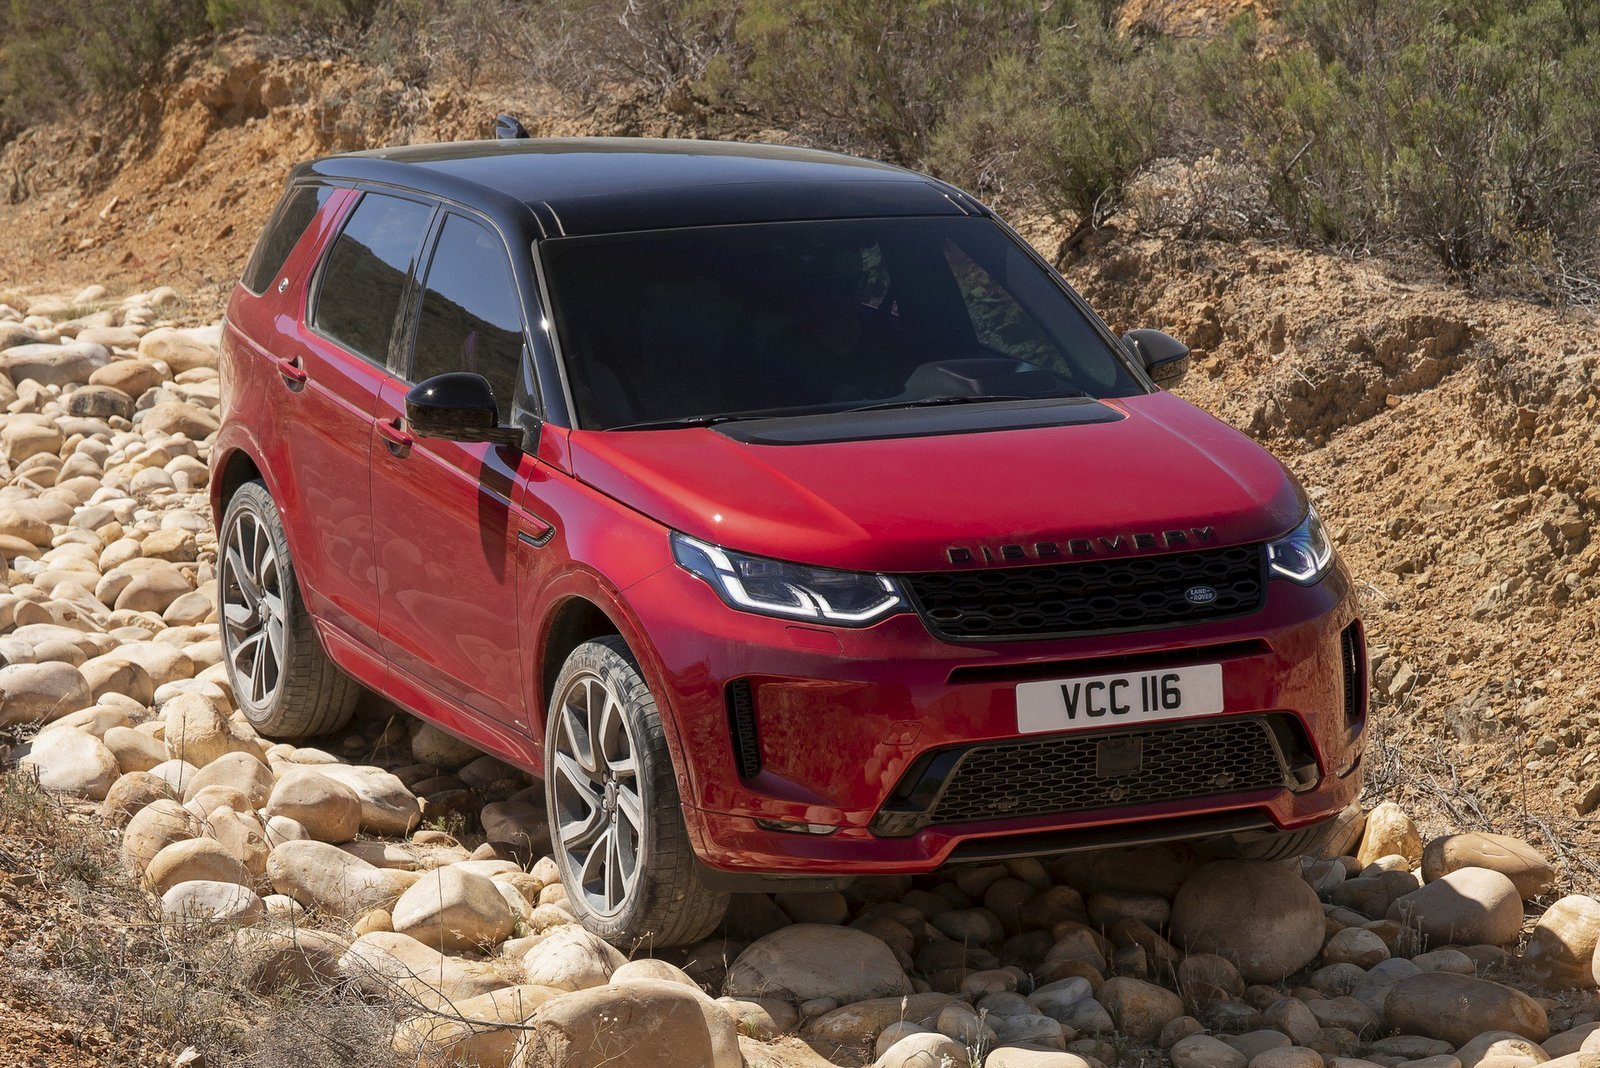 2020-land-rover-discovery-sport-8.jpg